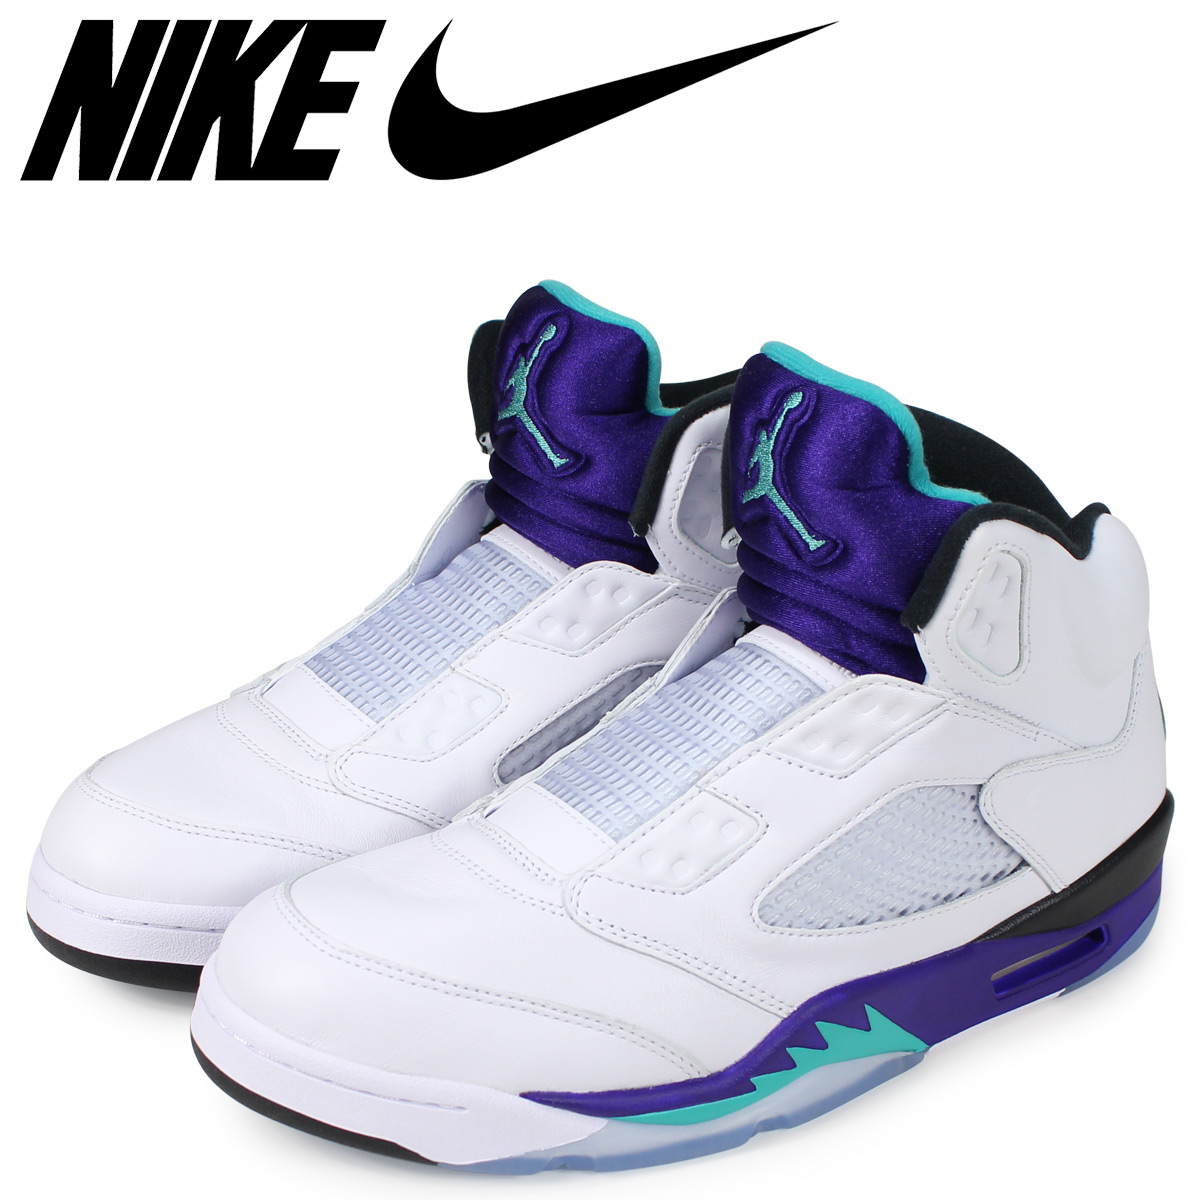 e42d8cfb28d6 NIKE Nike Air Jordan 5 nostalgic sneakers men AIR JORDAN 5 RETRO NRG FRESH  PRINCE grape AV3919-135  load planned Shinnyu load in reservation product  11 19 ...